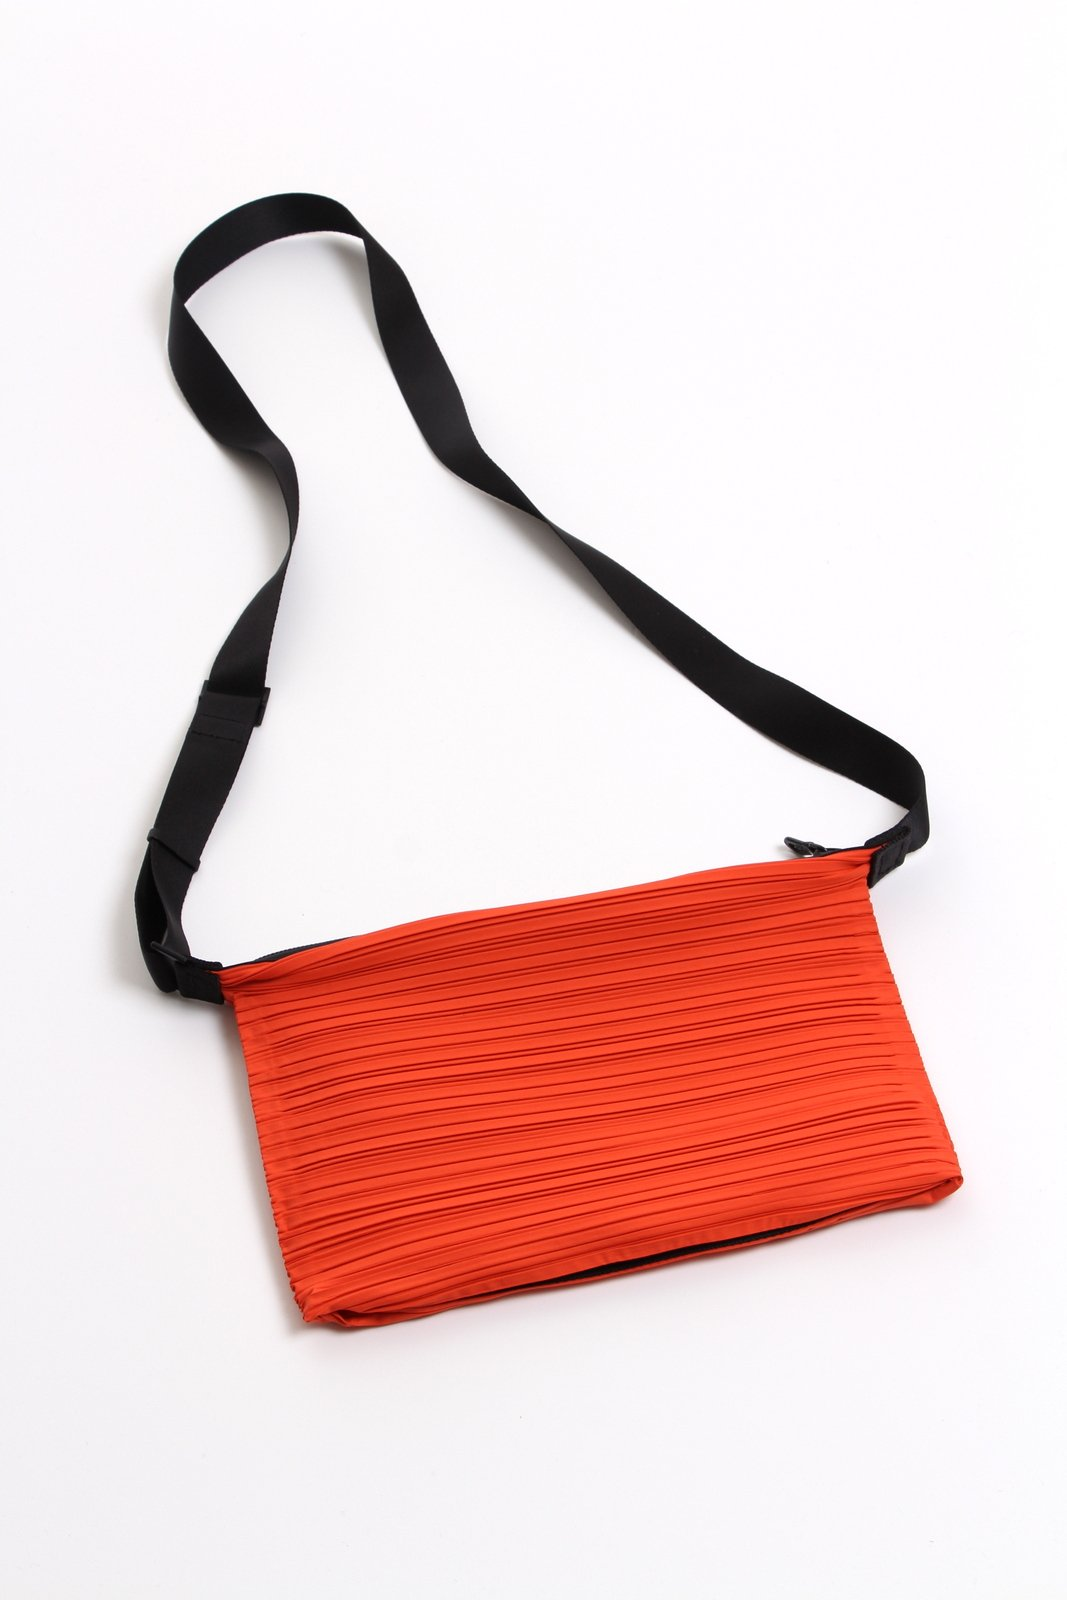 Pleats Please Petit sac Orange vendu par Bleu Natier